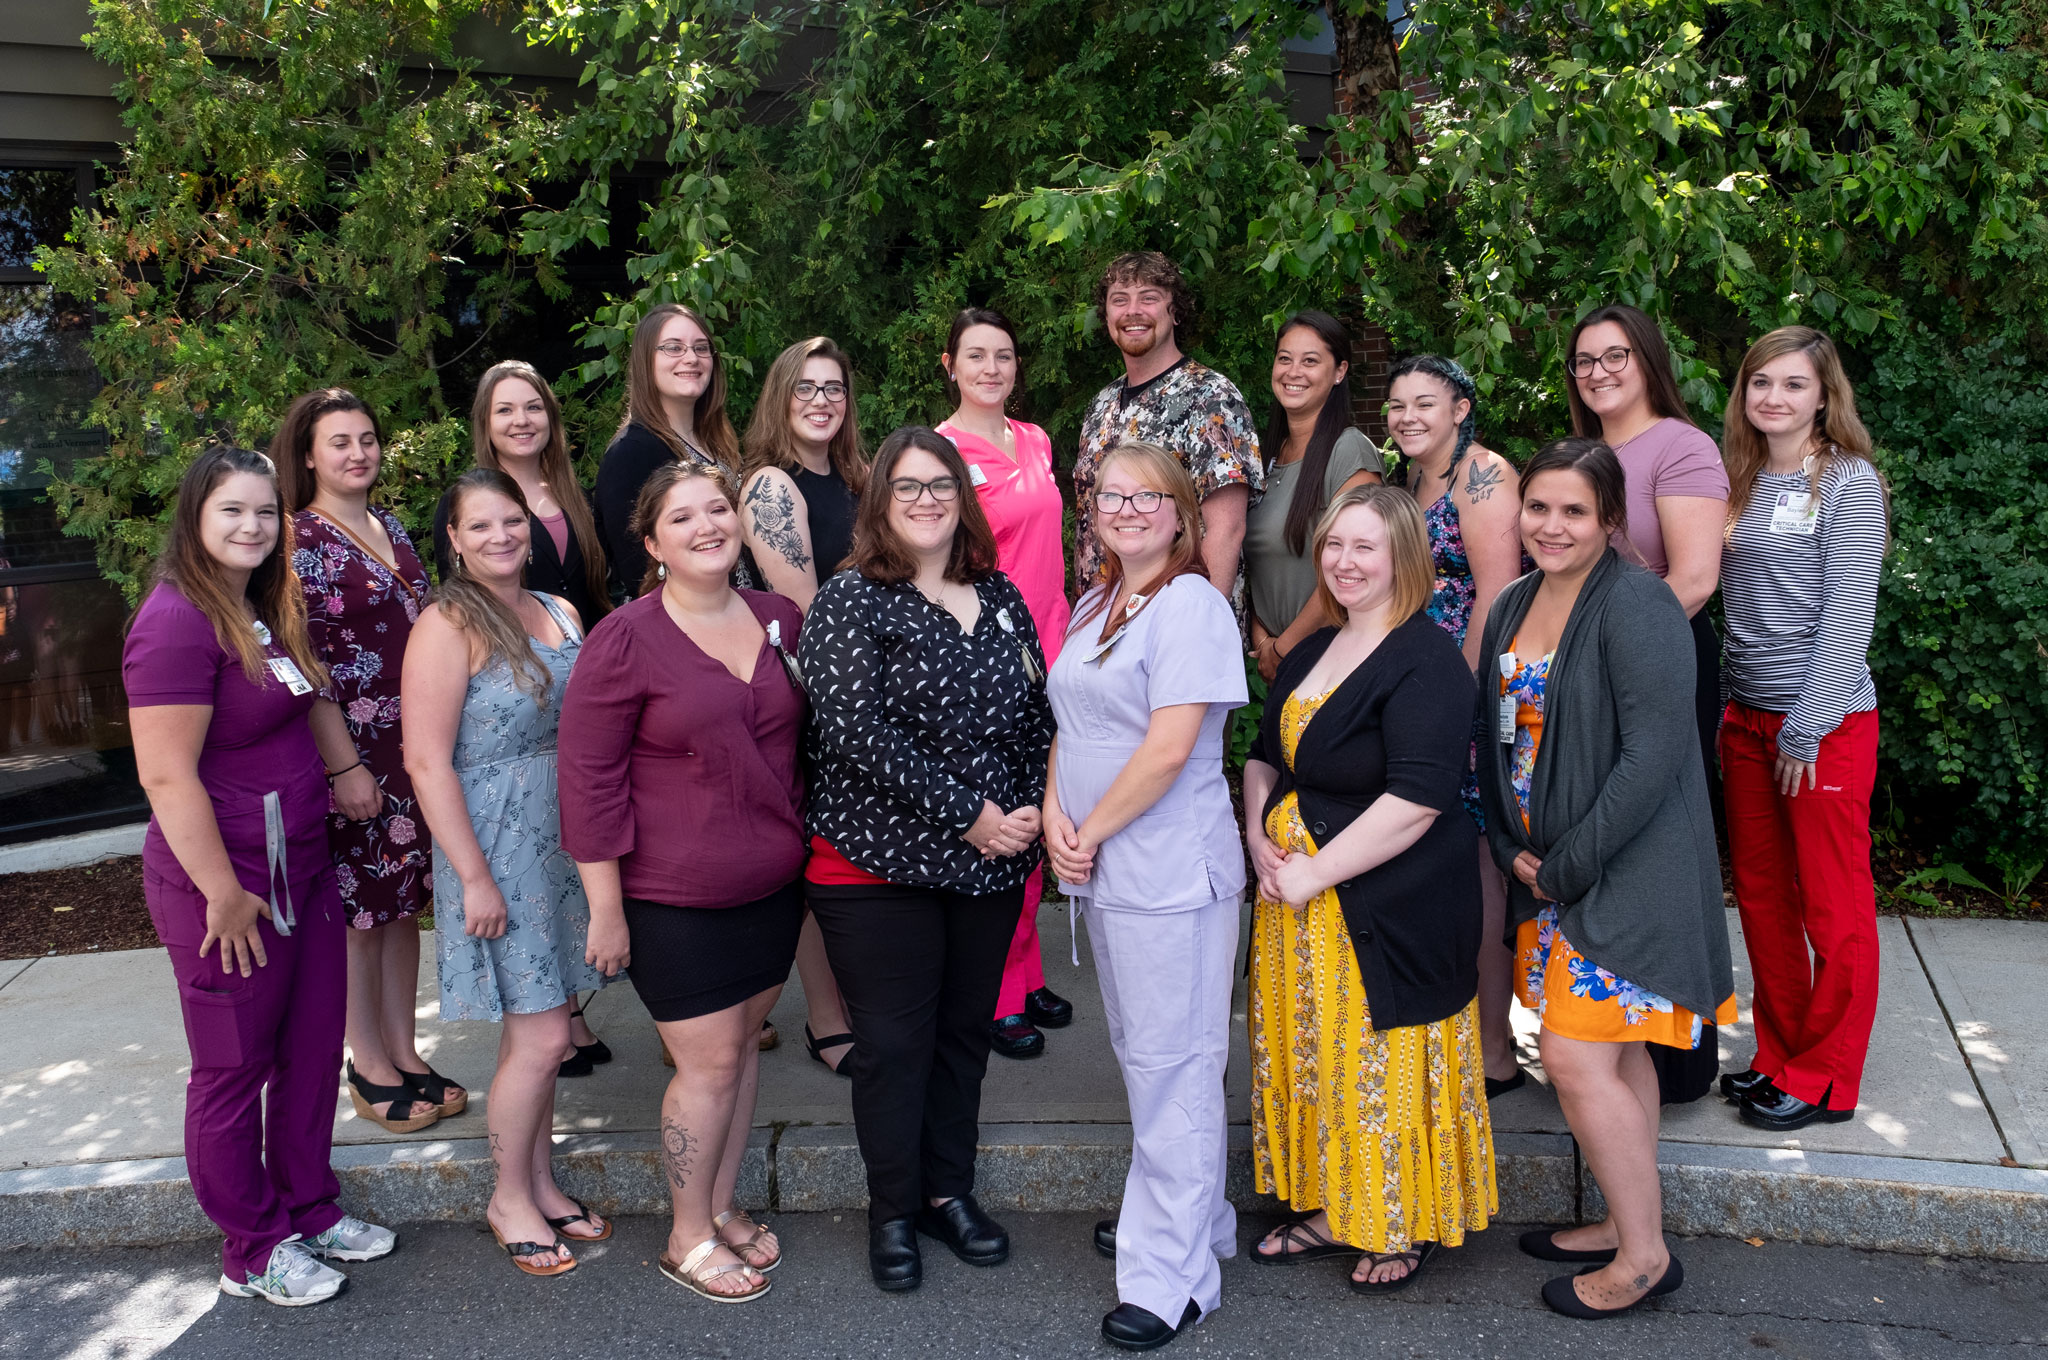 On Thursday, 18 LNAs at Central Vermont Medical Center celebrated the kick-off of their journey to becoming LPNs through a new partnership between CVMC, CCV, and Vermont Tech.